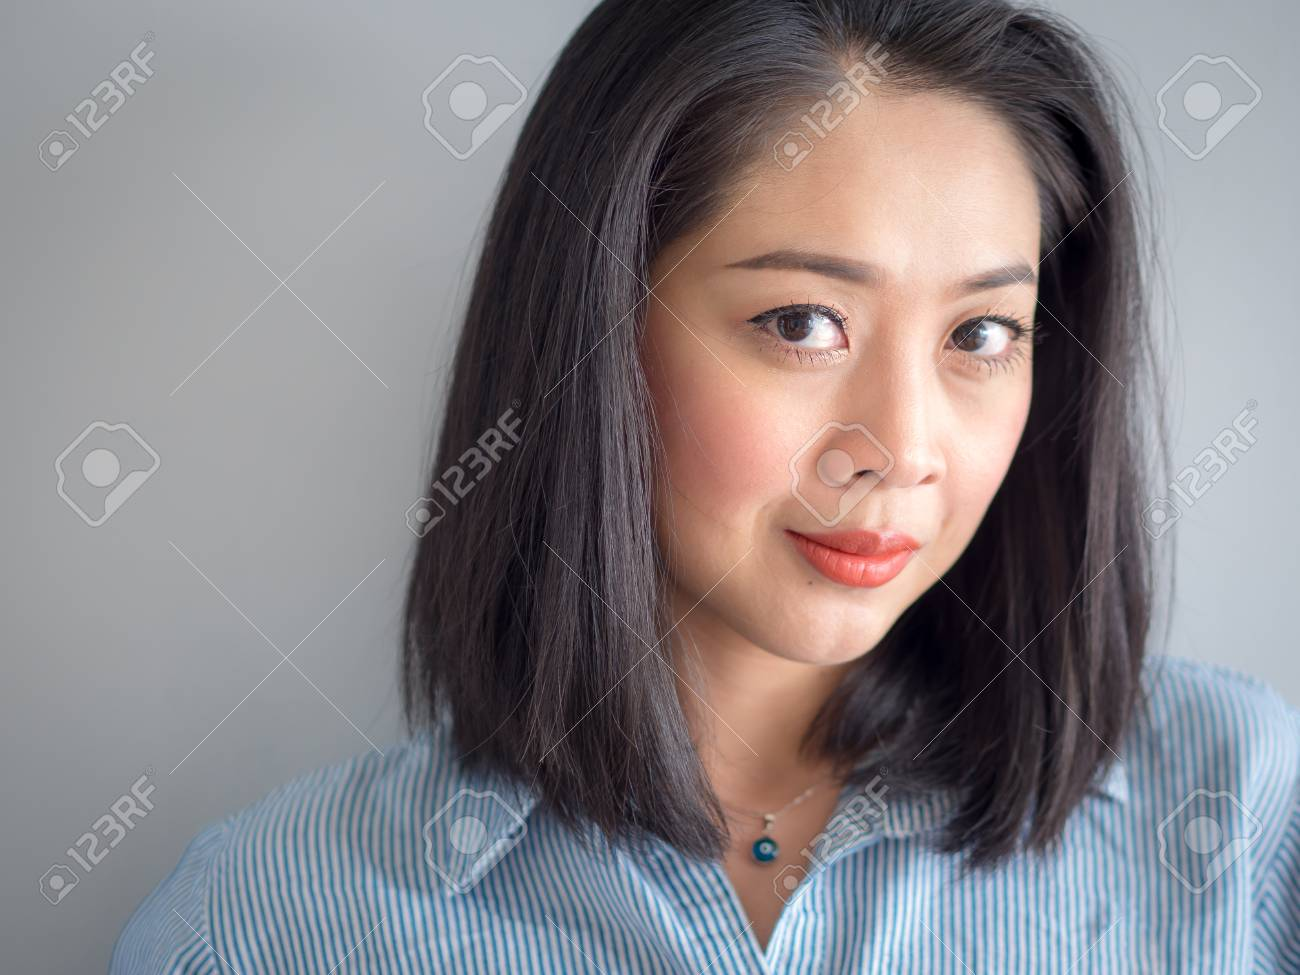 As an asian woman and